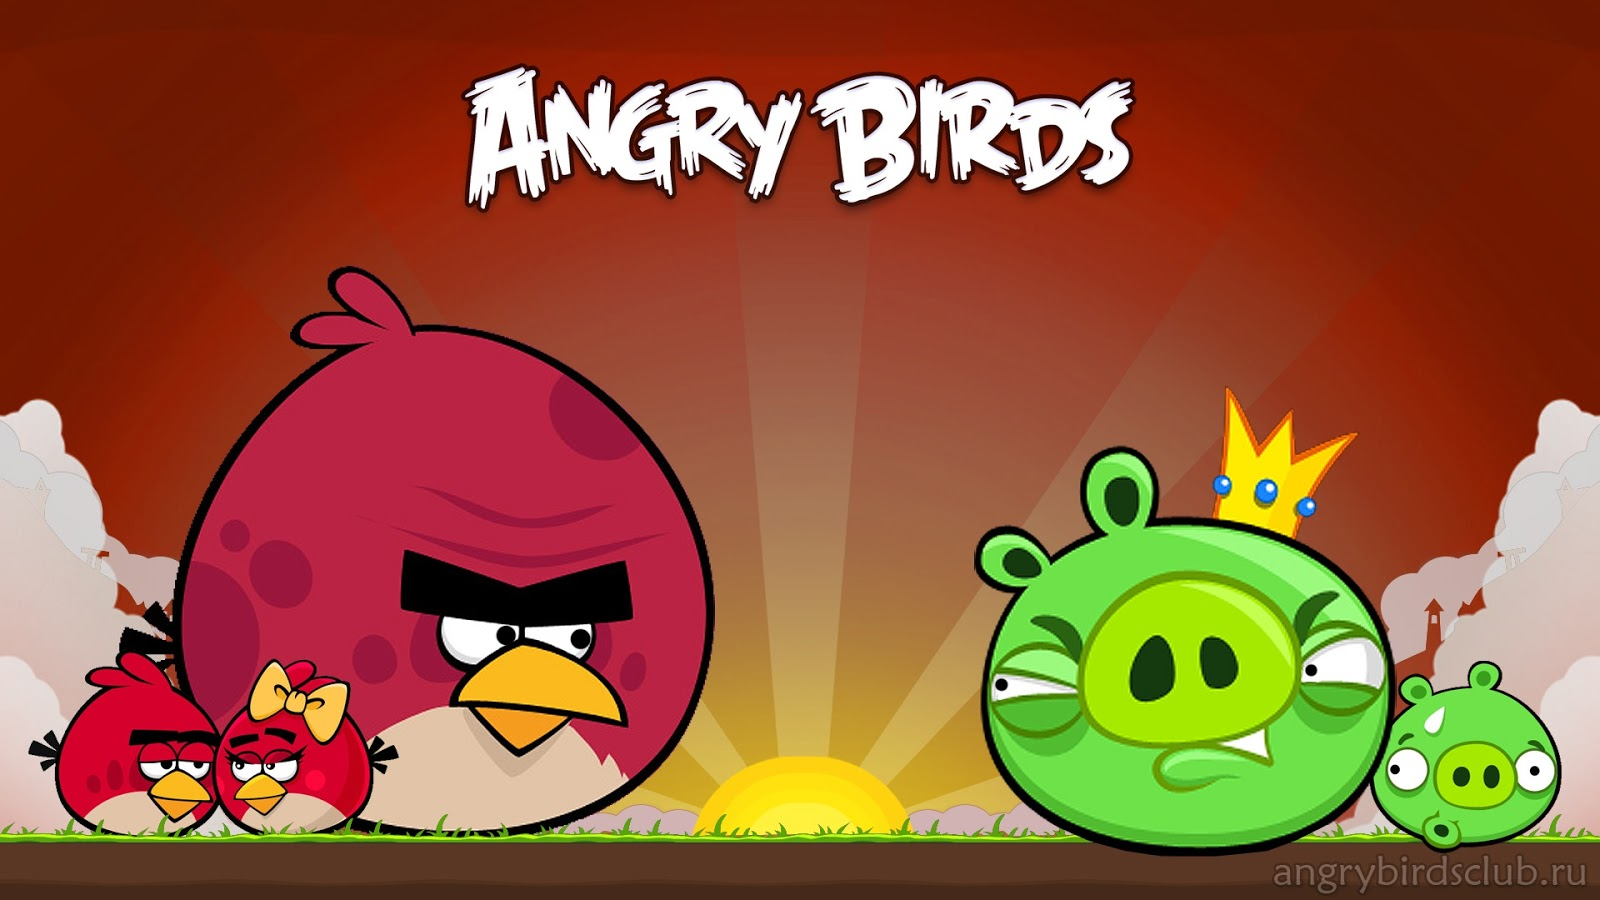 angry birds of javascript big brother bird patterns manorisms